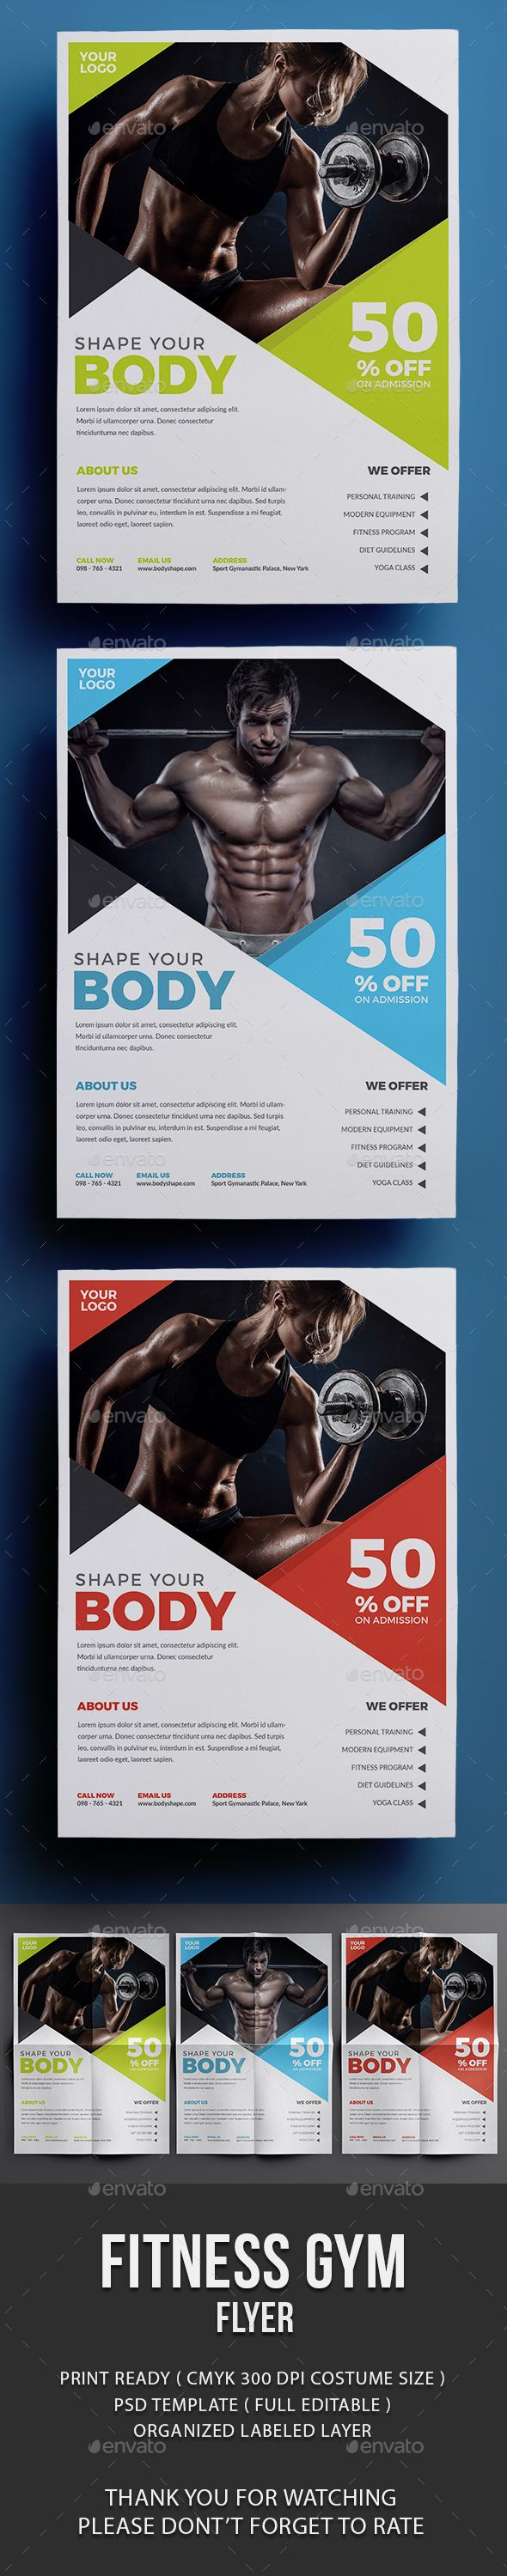 Fitness Flyer Design - Events Flyer Template PSD. Download here: graphicriver.ne...